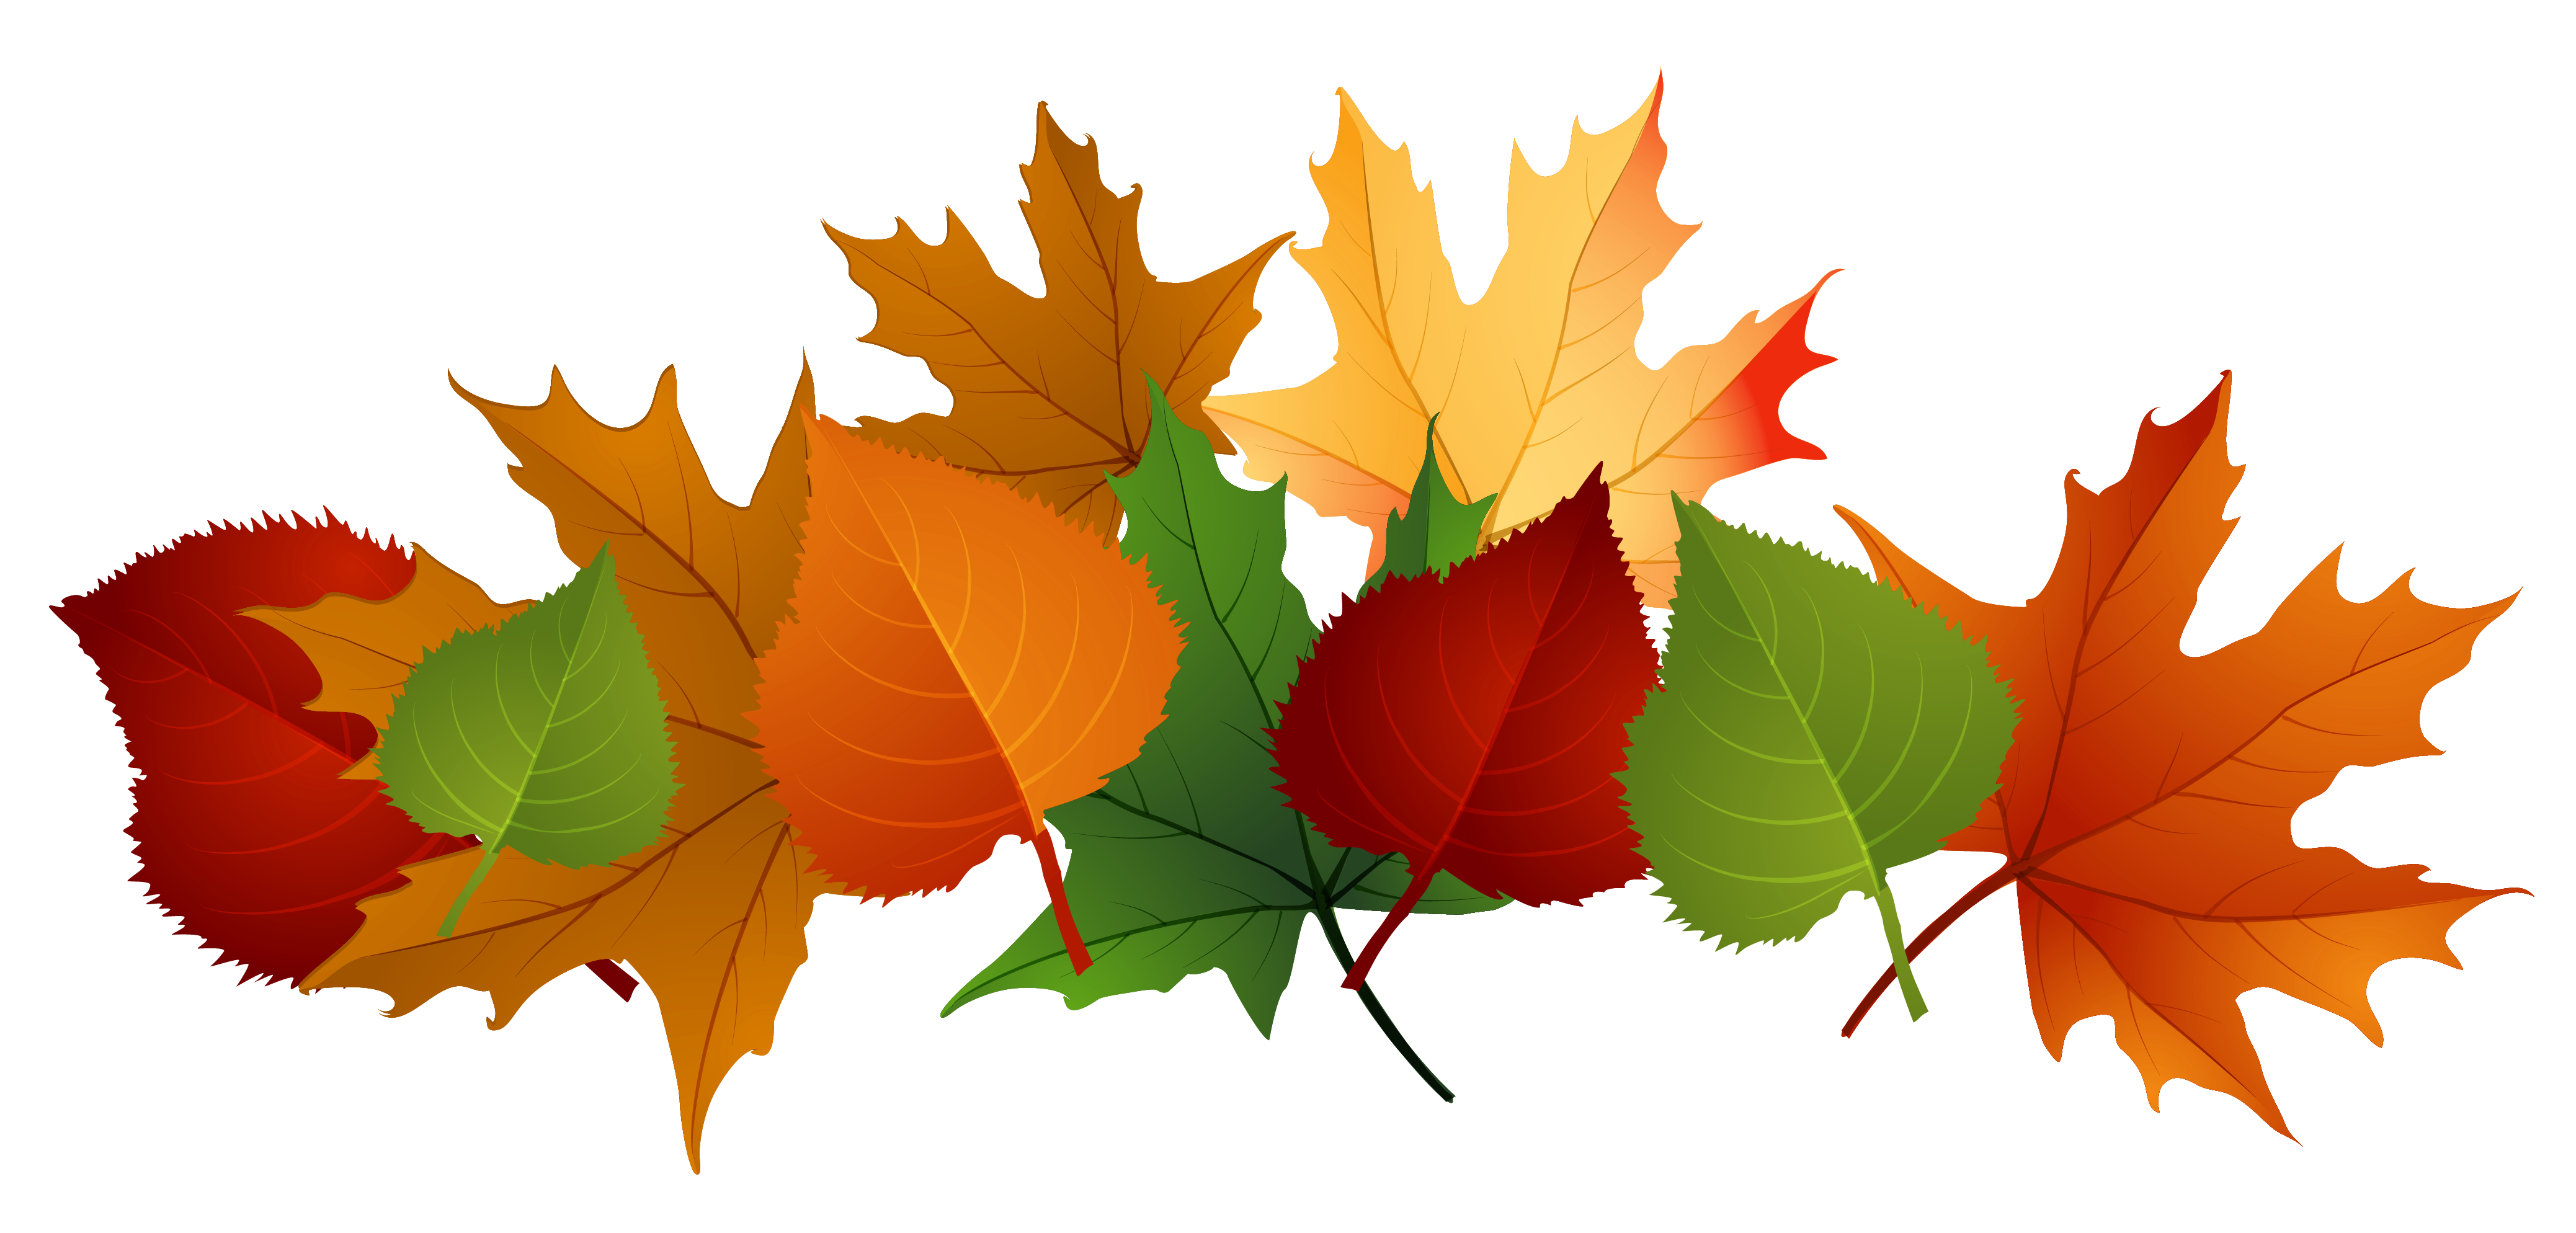 Thanksgiving clipart background picture transparent stock Fall And Thanksgiving Clipart at GetDrawings.com | Free for personal ... picture transparent stock